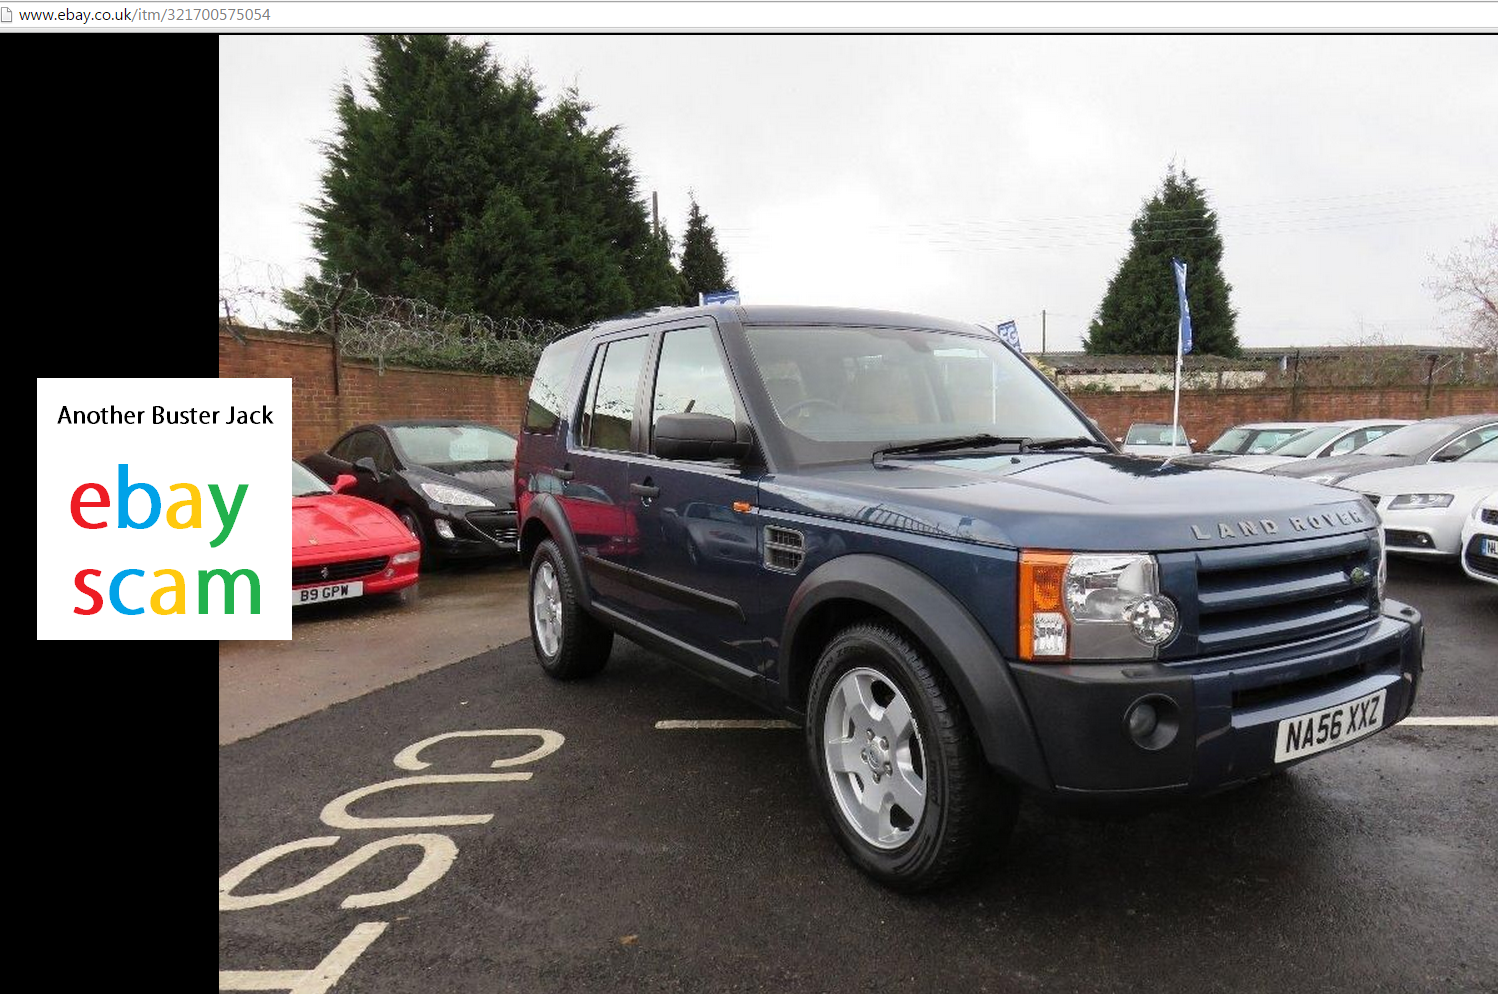 Jack Buster Jack Ebay Scam 2006 Land Rover Discovery 2 7td 159 Other Vehicles Na56xxz Fraud Na56 Xxz 20 Mar 15